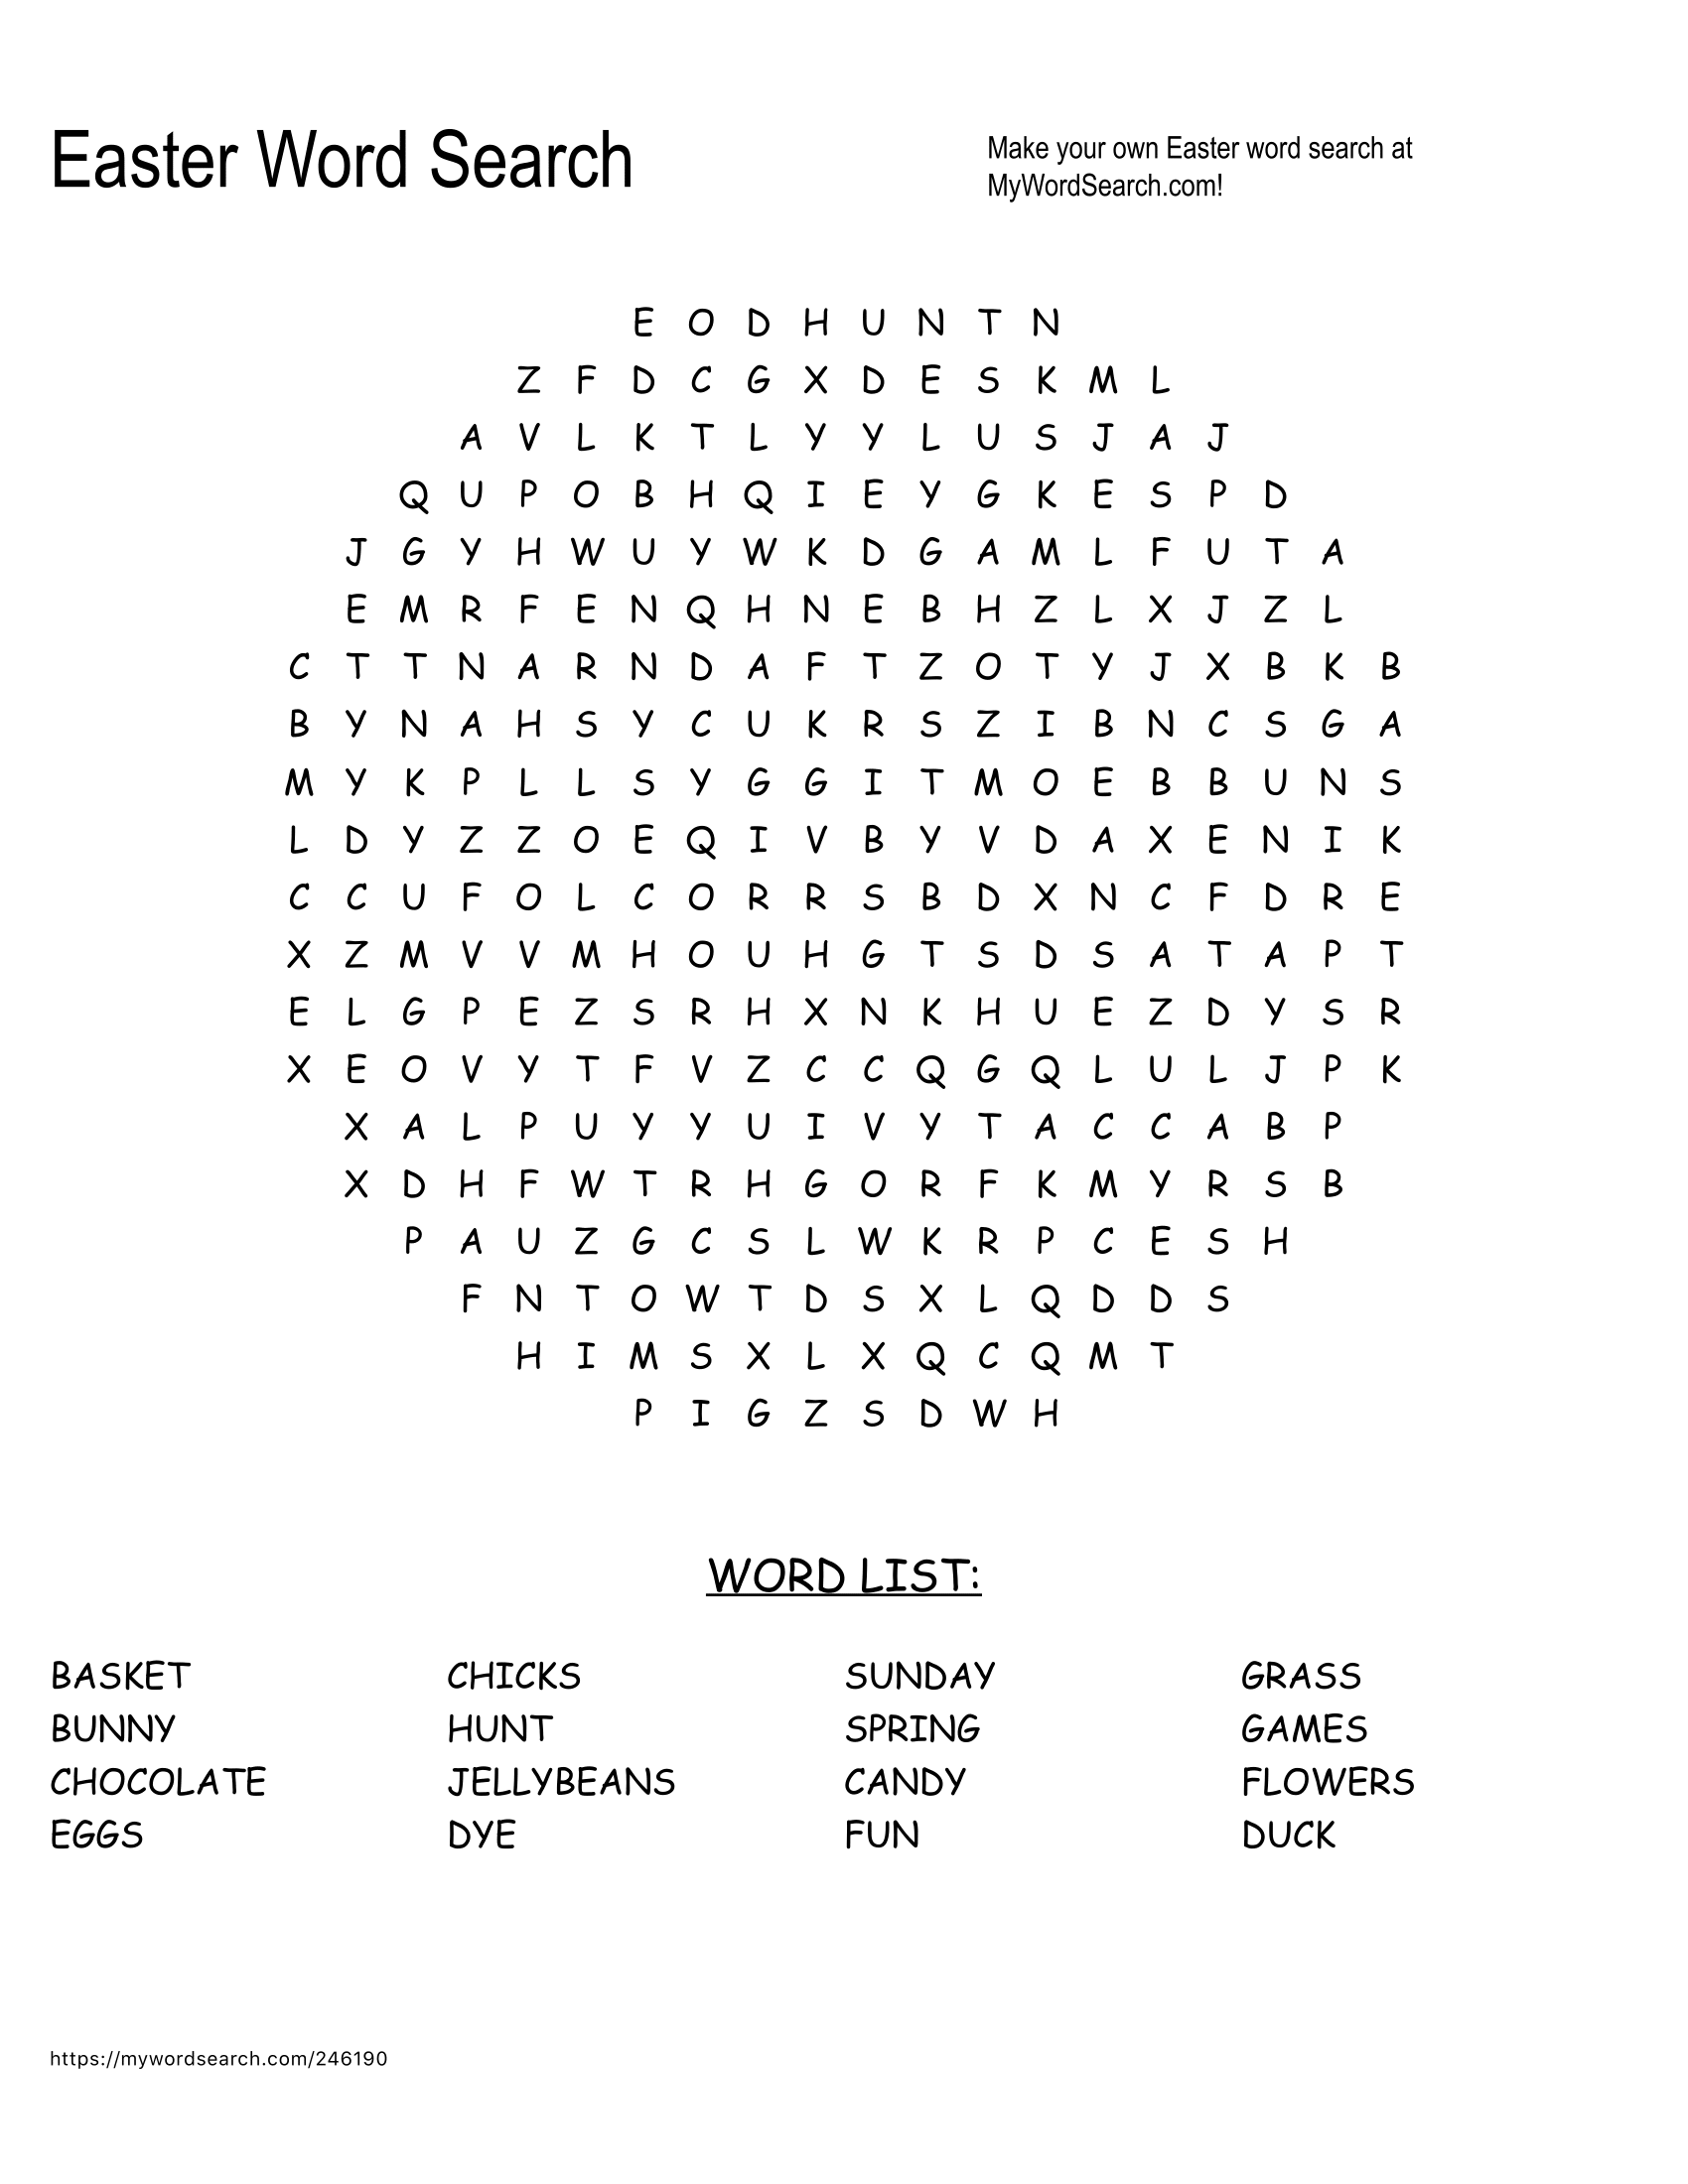 Easter Word Searches Make A Fun Addition To Your Easter